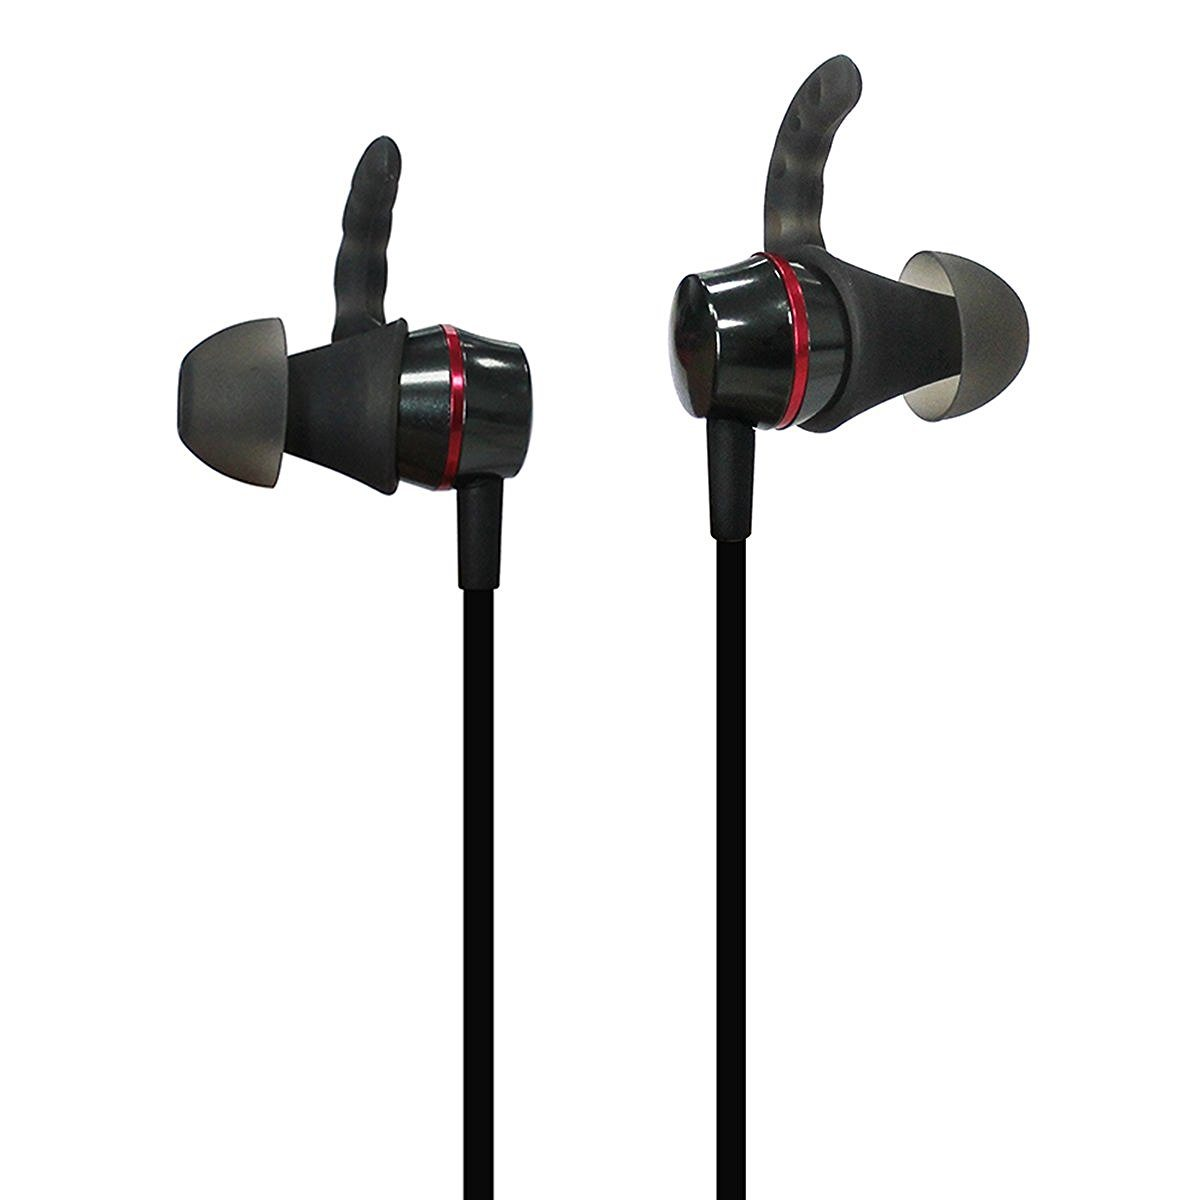 in-Ear Earbuds Noise Canceling Earphones with Mic for iPhone